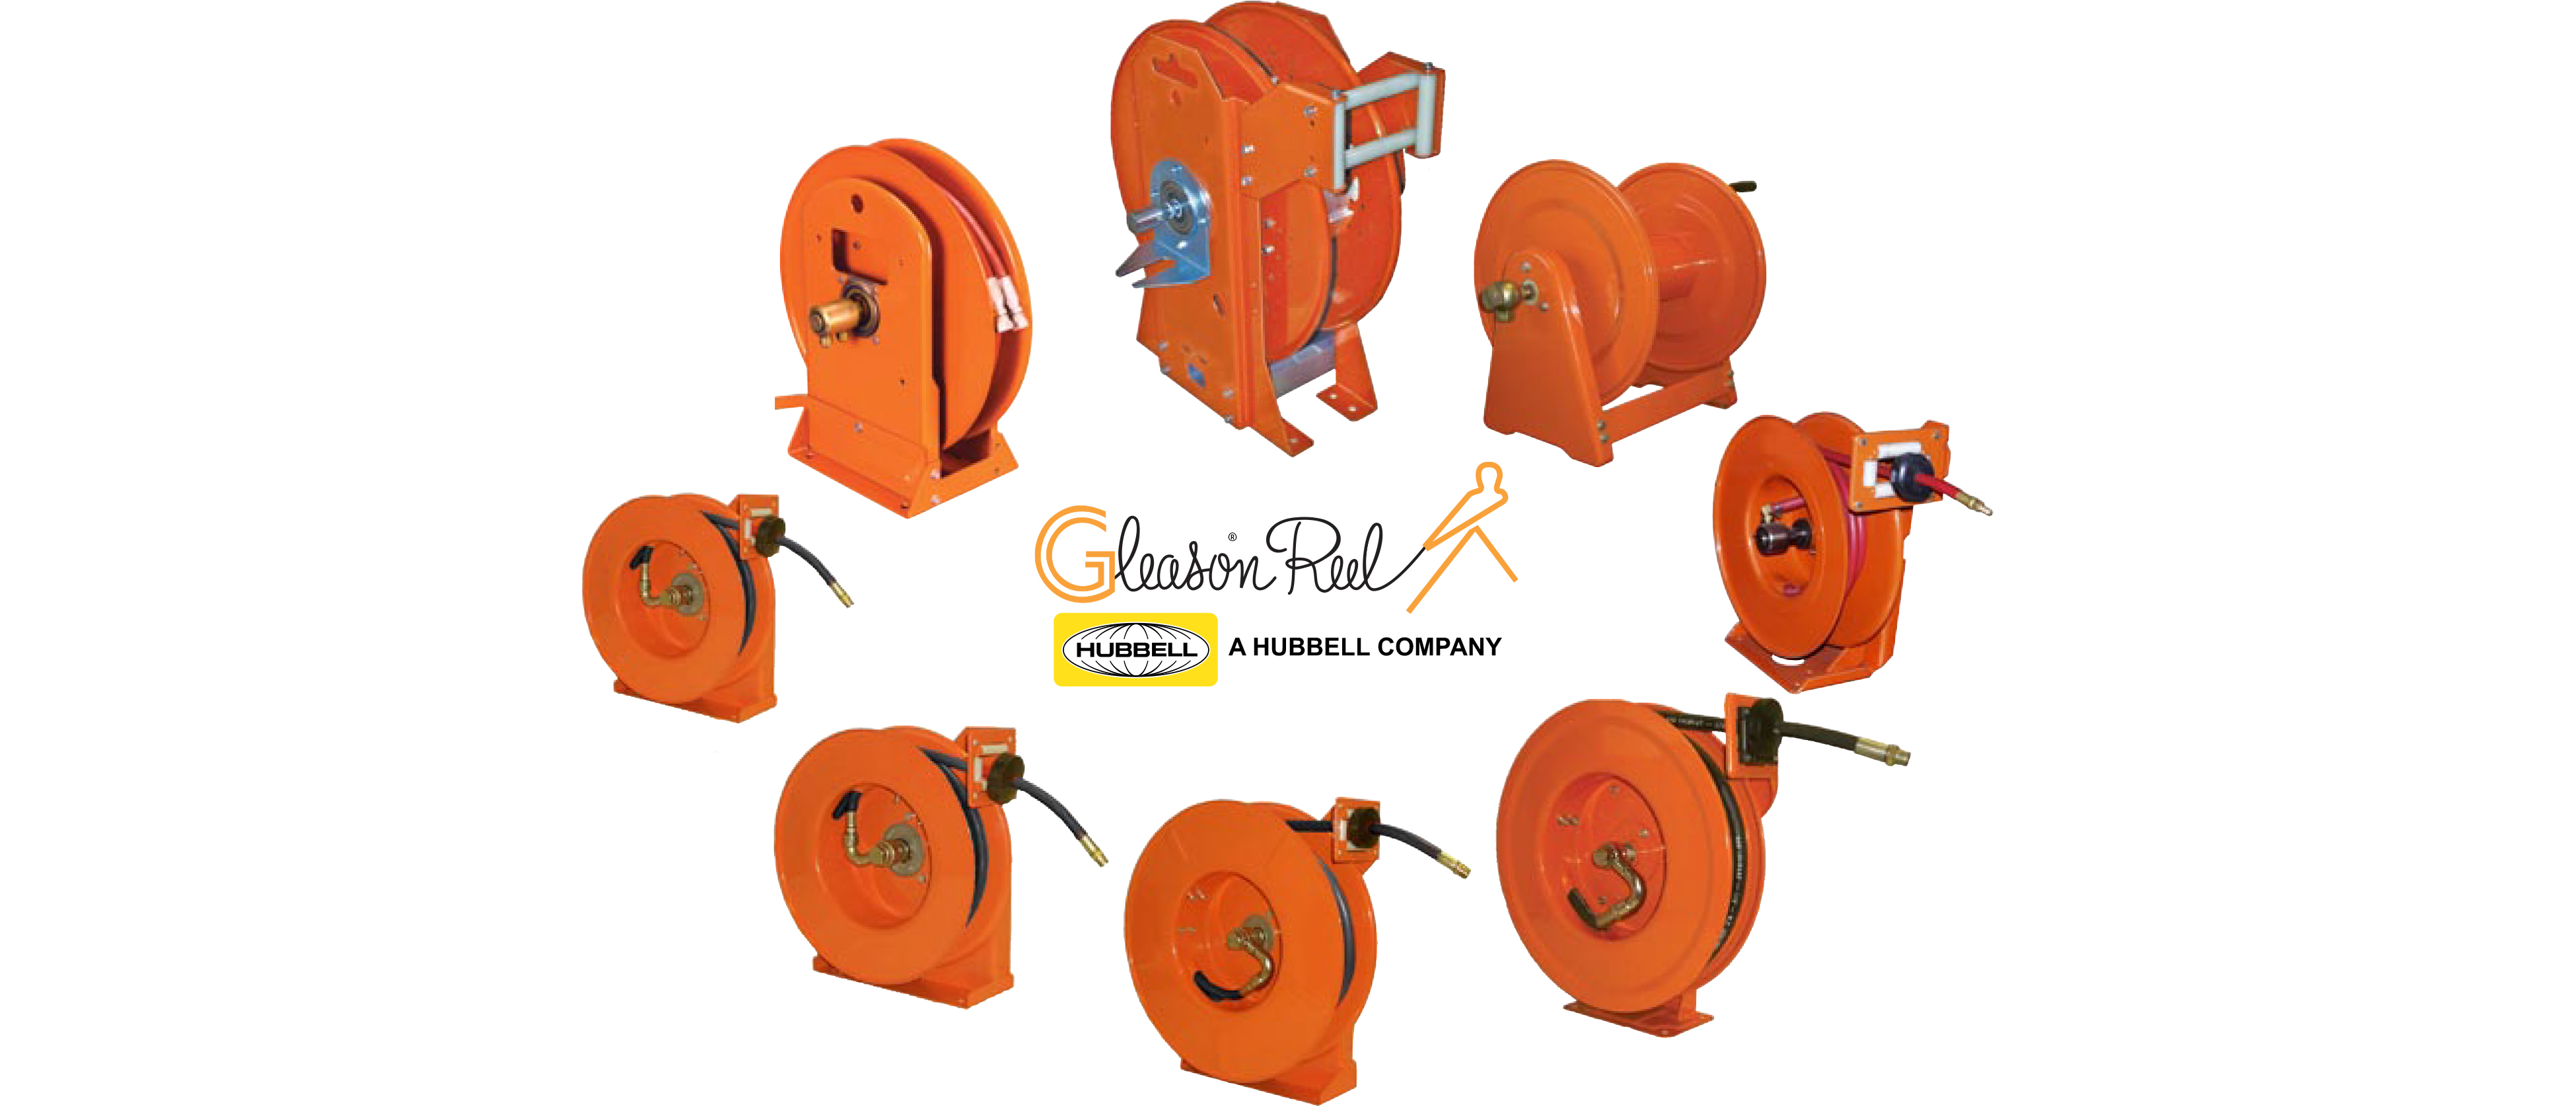 Cable & hose management system using Gleason Reel and Powertrak.